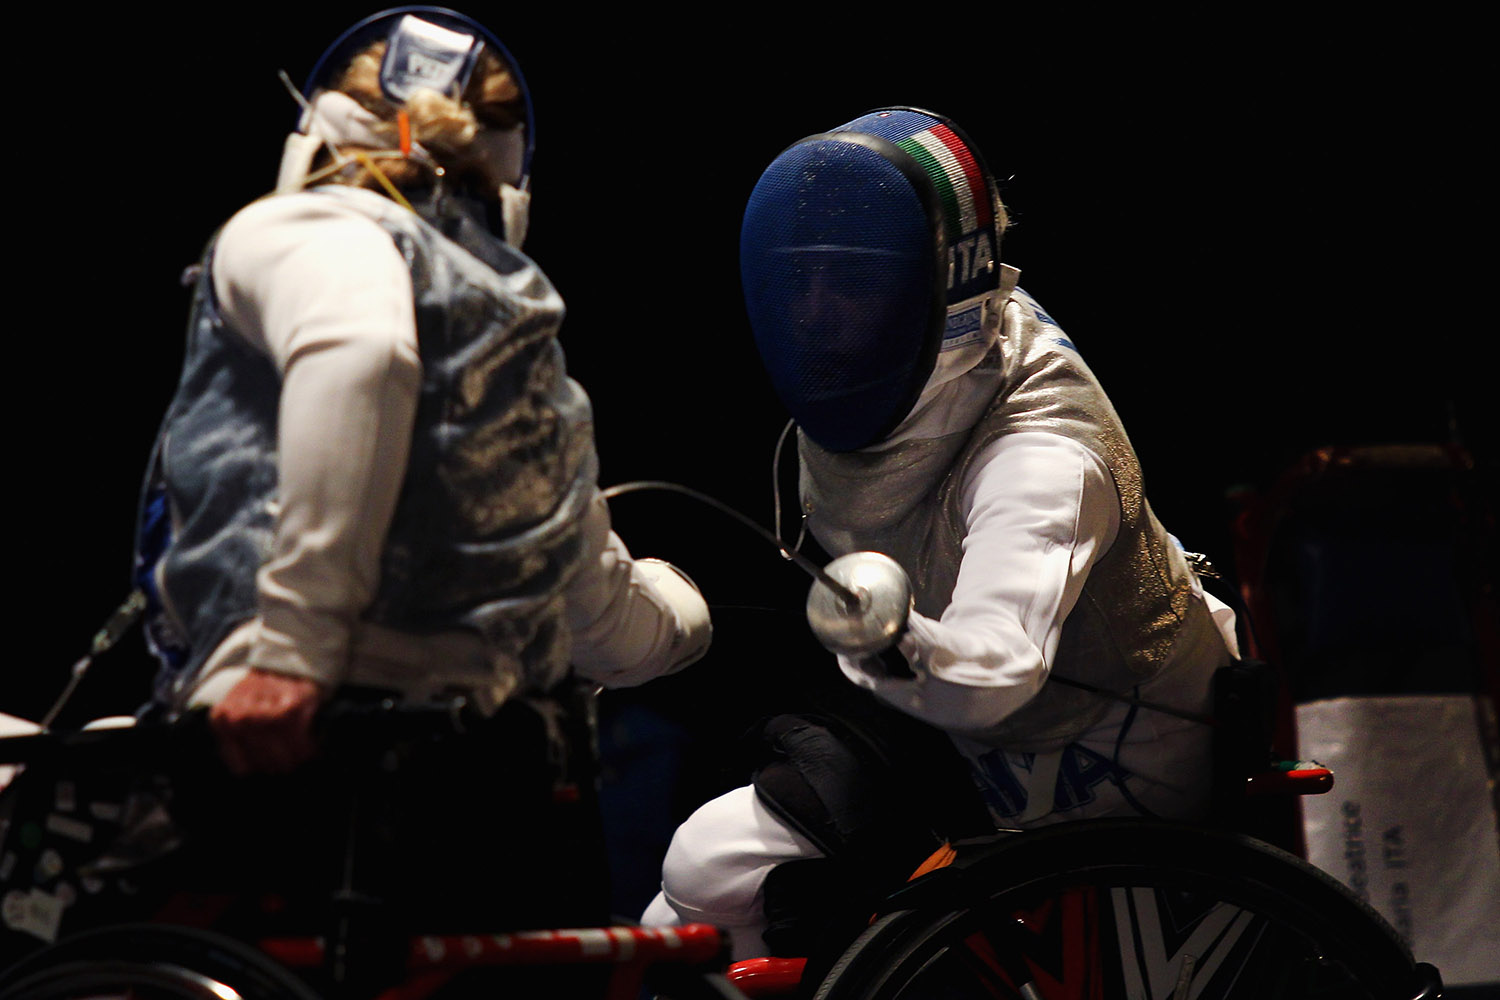 Beatrice Vio (right) of Italy competes with Irma Khetsuriani of Georgia in the Women's Quarter-Final match foil fencing during the IWAS Wheelchair Fencing World Championships on Nov. 8  in Rome, Italy. Paolo Bruno/Getty Images